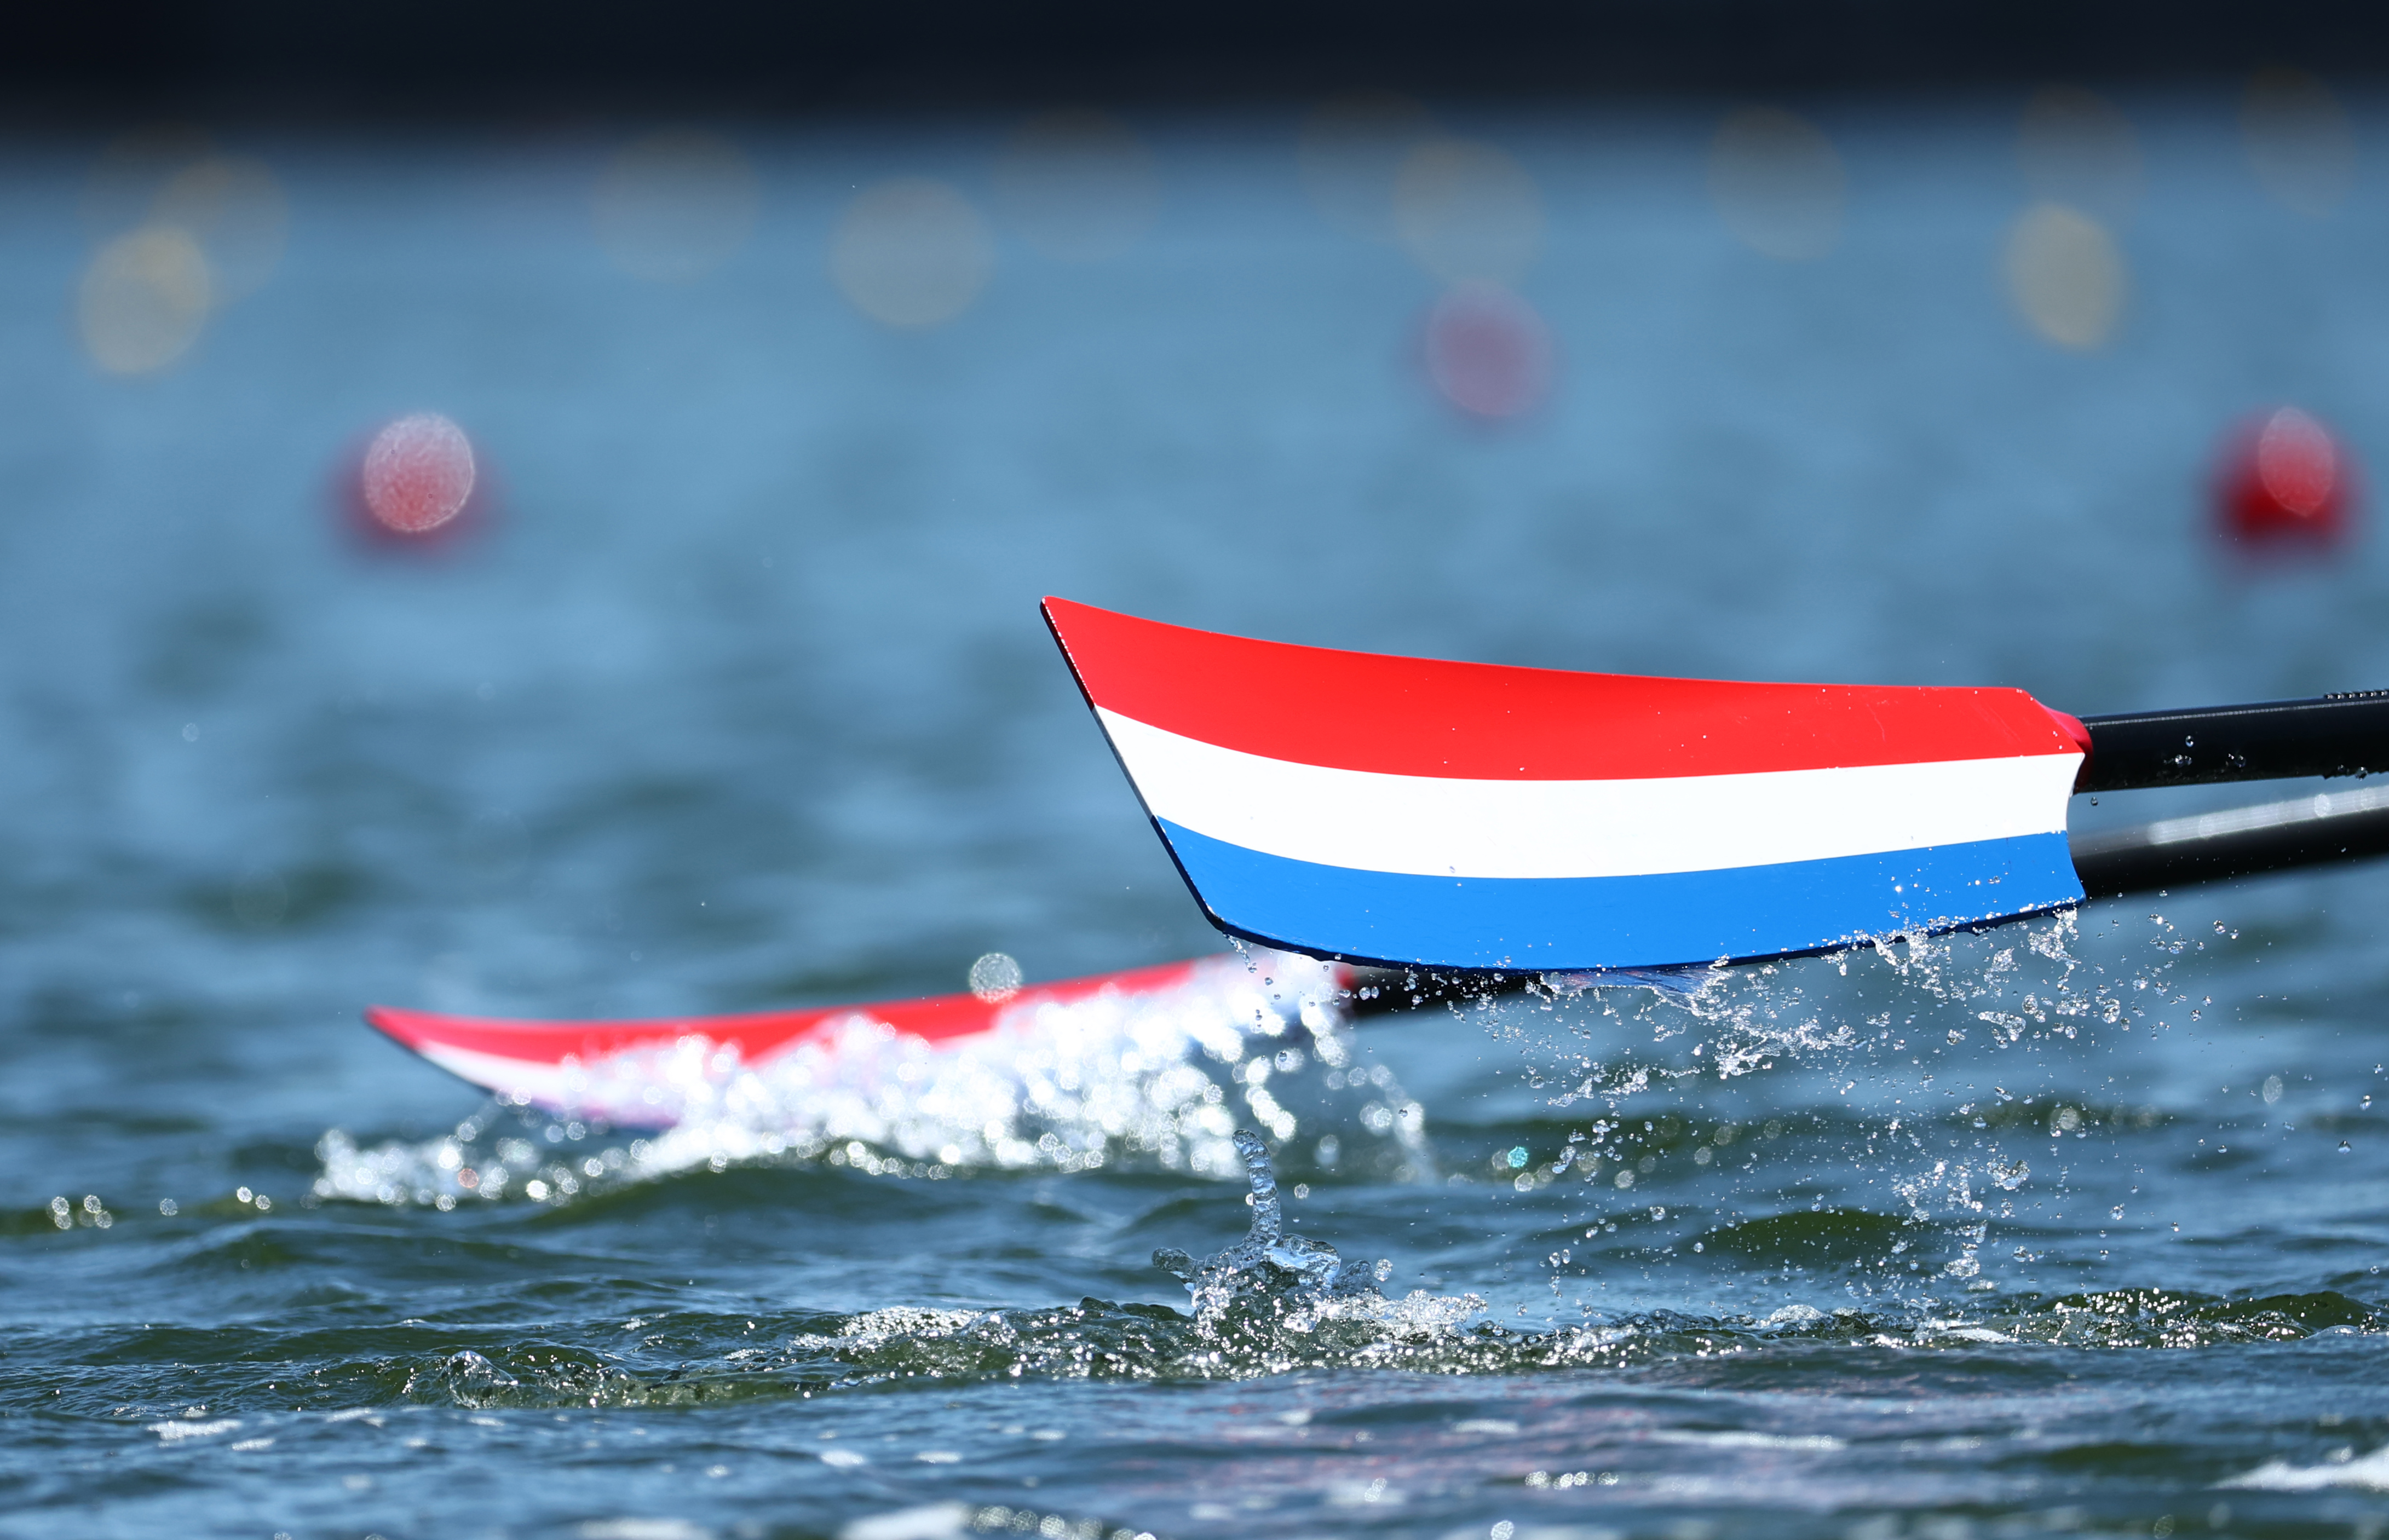 Tokyo 2020 Olympics - Rowing Training Sessions - Sea Forest Waterway, Tokyo, Japan - July 18, 2021 General view of an oar in the Netherlands flag colours during a training session REUTERS/Thomas Peter